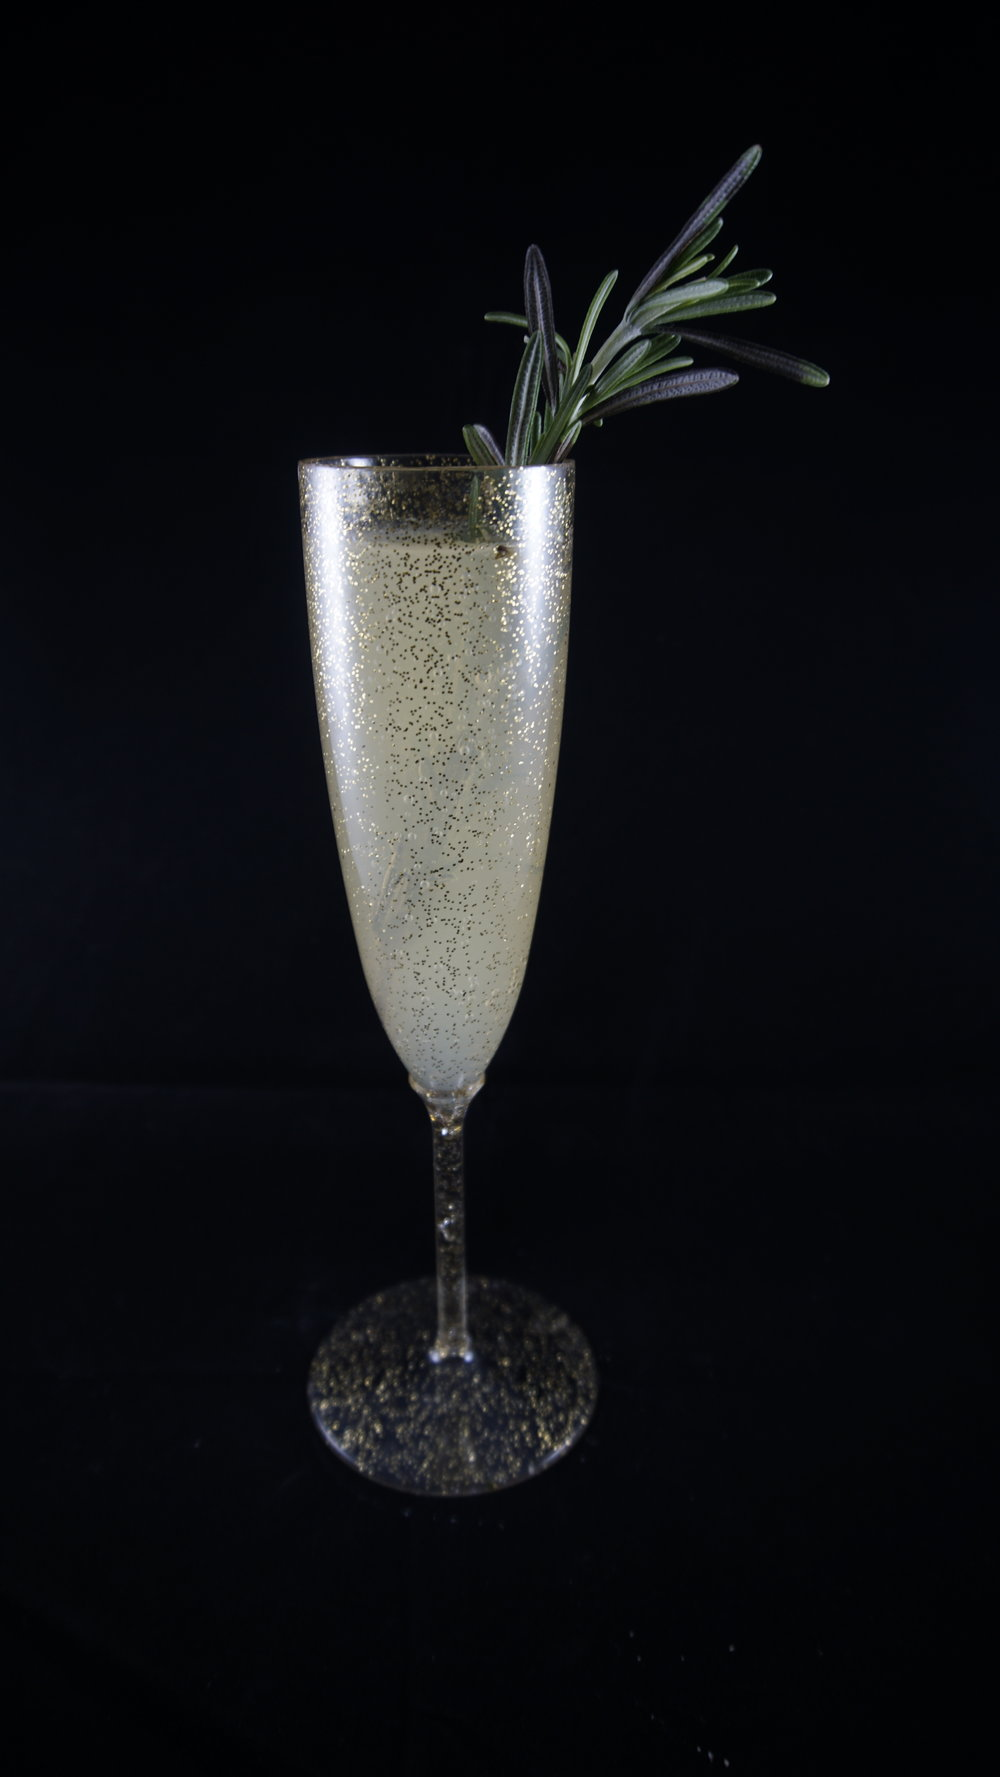 Afternoon Defright - 1.5 oz AbsintheSplash of rosemary simple syrupDry champagneFresh rosemary (for garnish) Pour absinthe and rosemary simple syrup in a shaker over ice. Shake until well chilled, then pour in a glass and top with champagne. Add fresh rosemary for garnish.